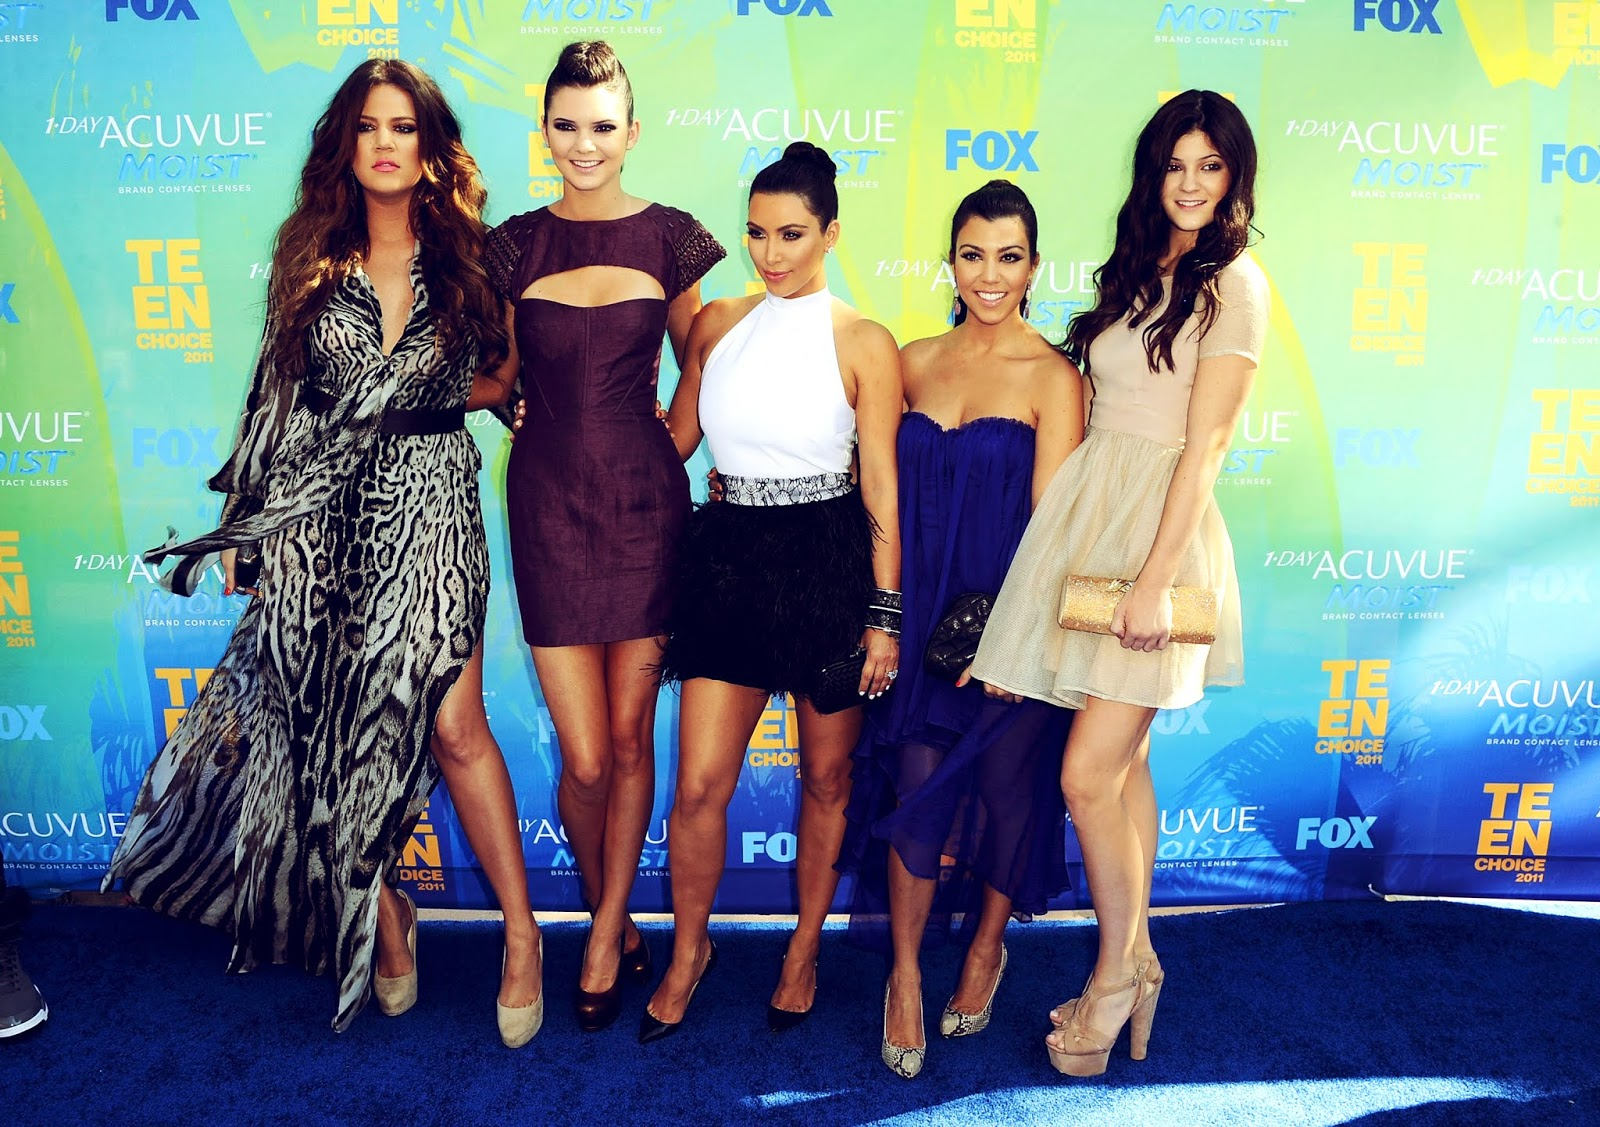 30 - Teen Choice Awards in August 11, 2011